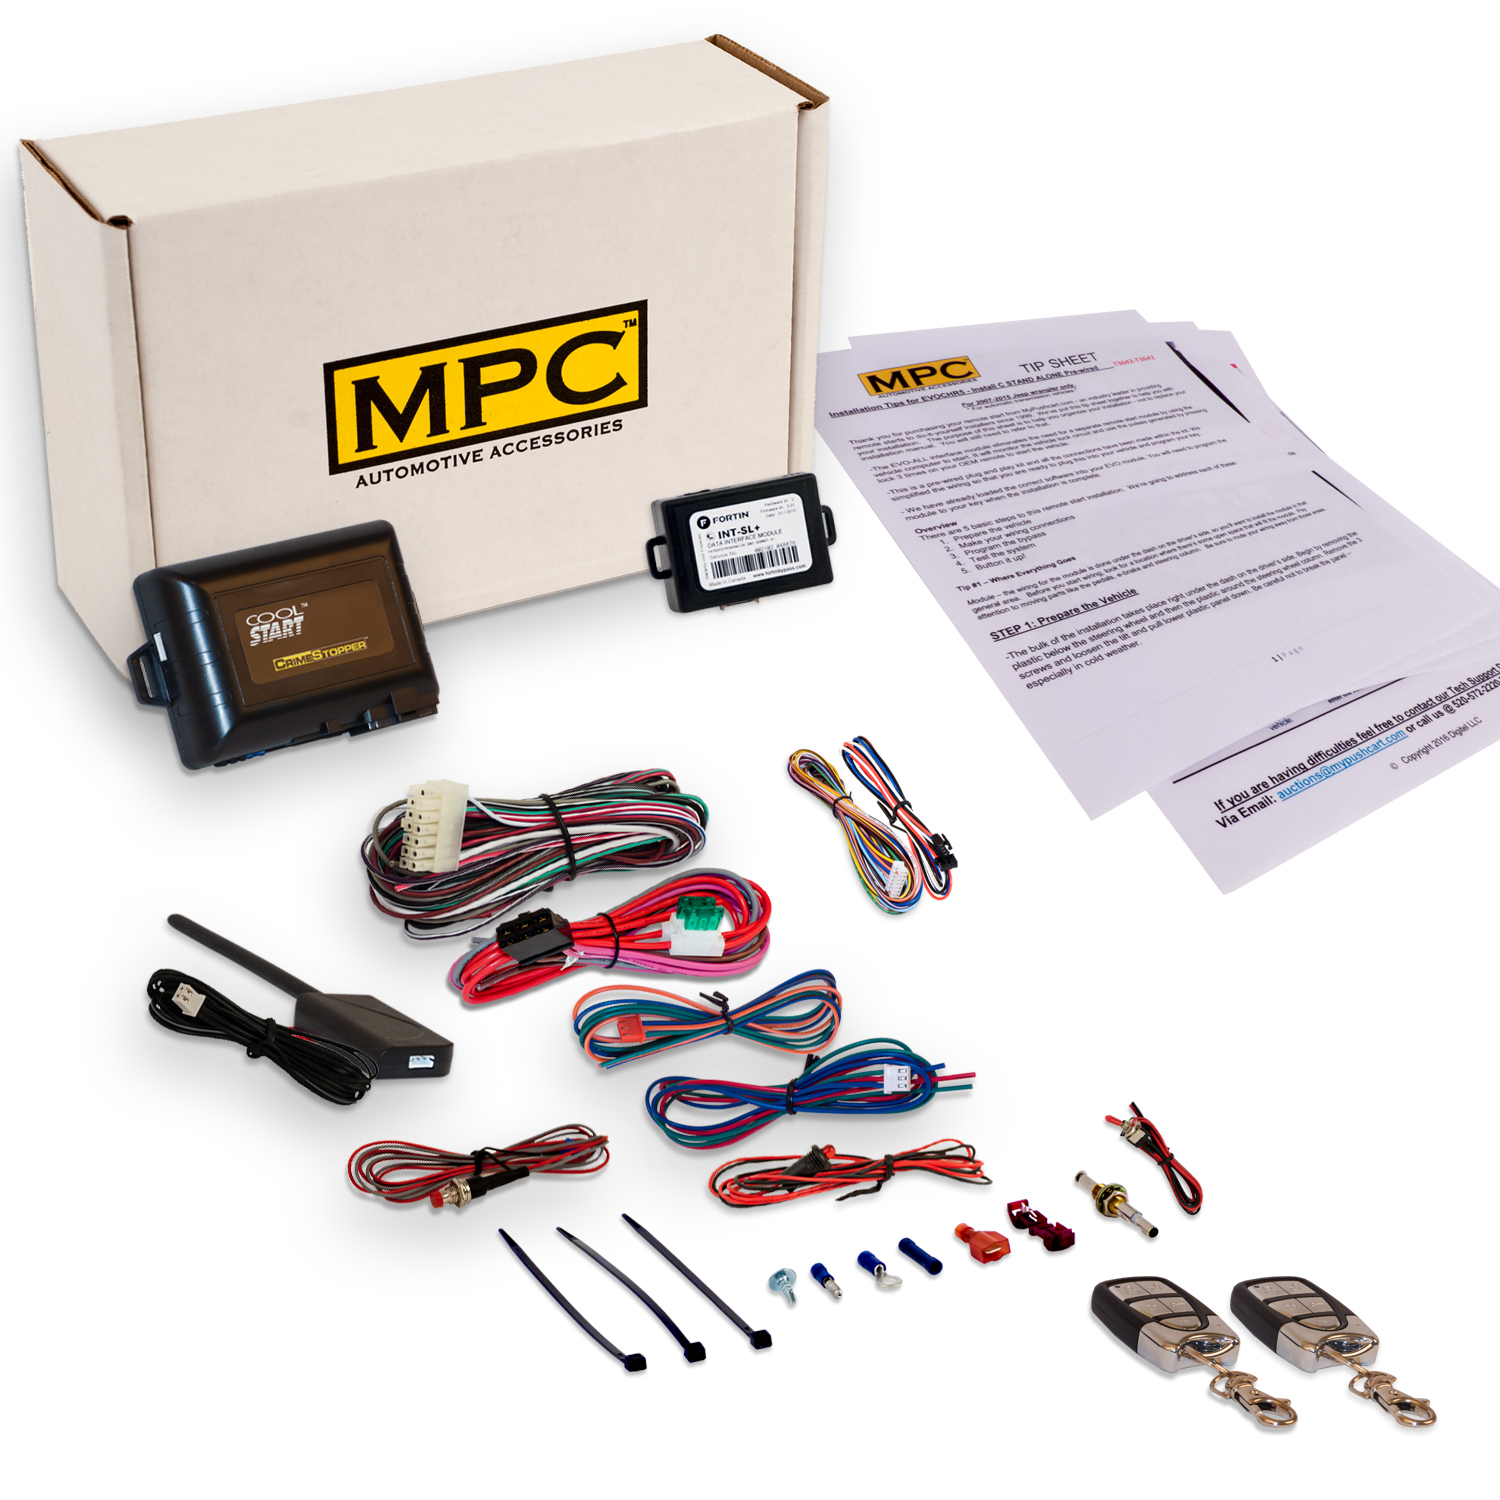 Remote Start Kit W Keyless Entry For 1999 2004 Jeep Grand Cherokee Yj Wiring Harness Ebay Click Thumbnails To Enlarge